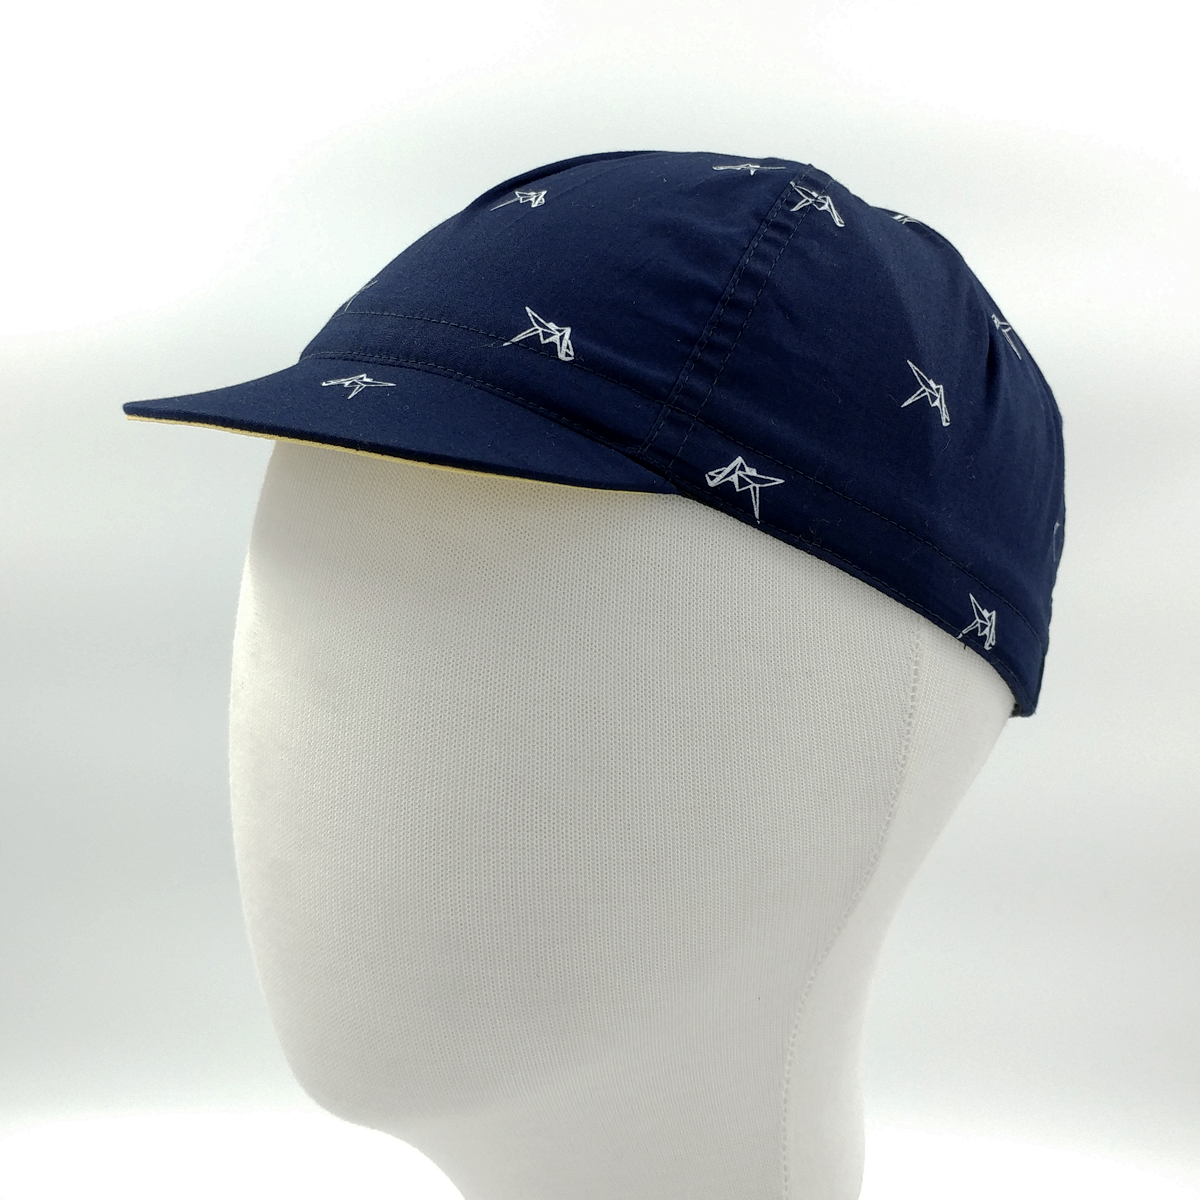 cycling cap - foldbird1